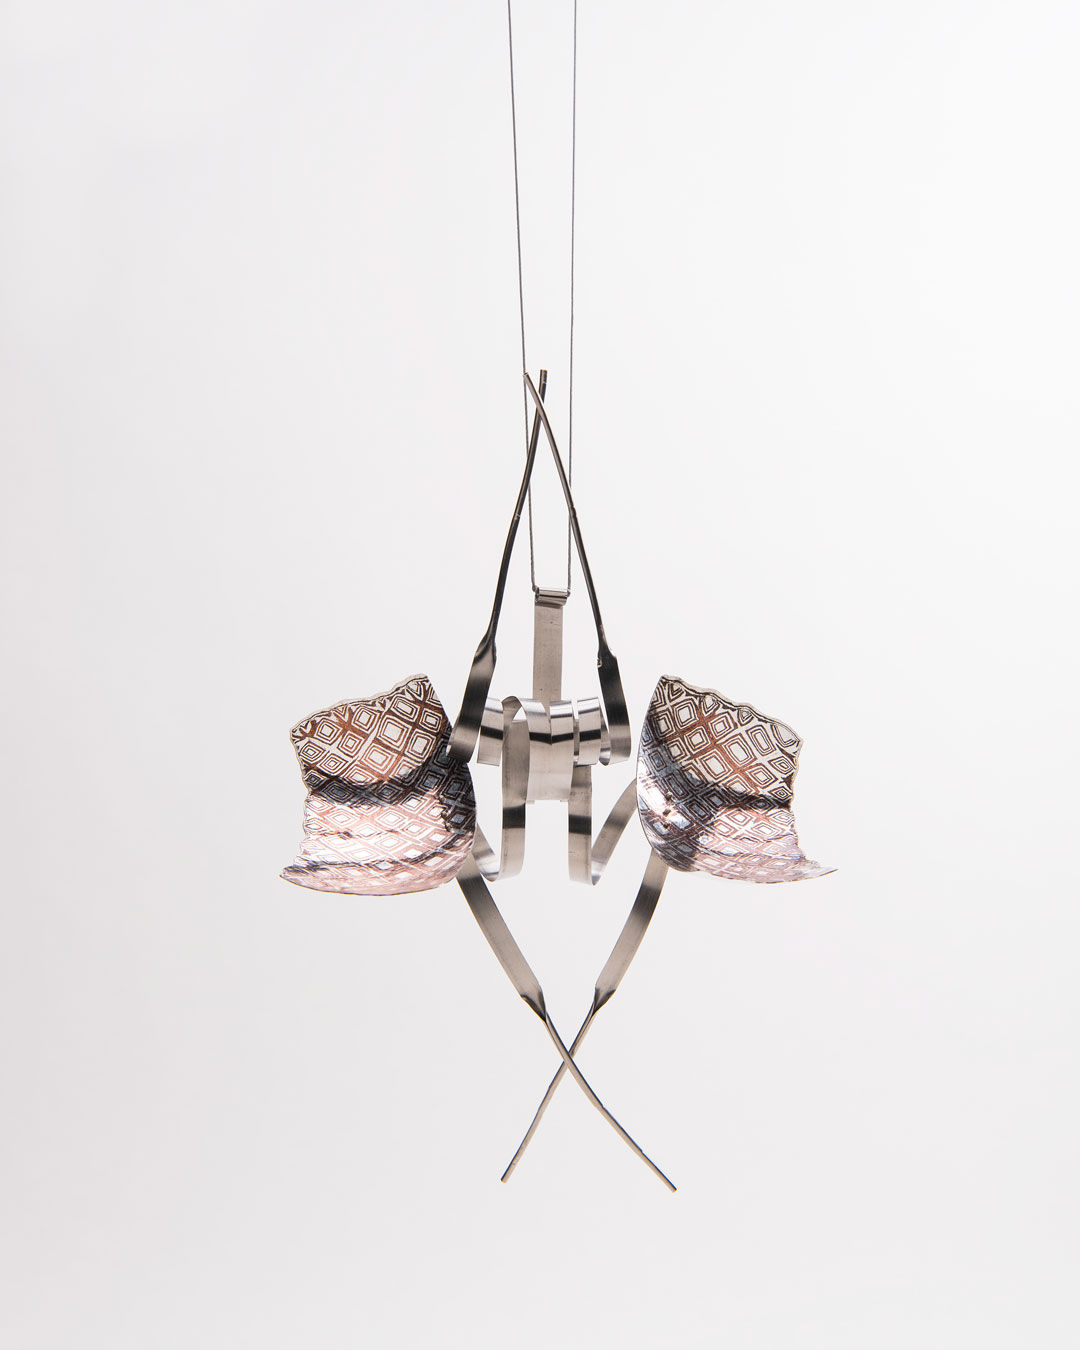 Andrea Wippermann, Mantis Religiosa, 2018, pendant; silver, copper, stainless steel, blackened silver, 180 x 120 x 65 mm, €4600